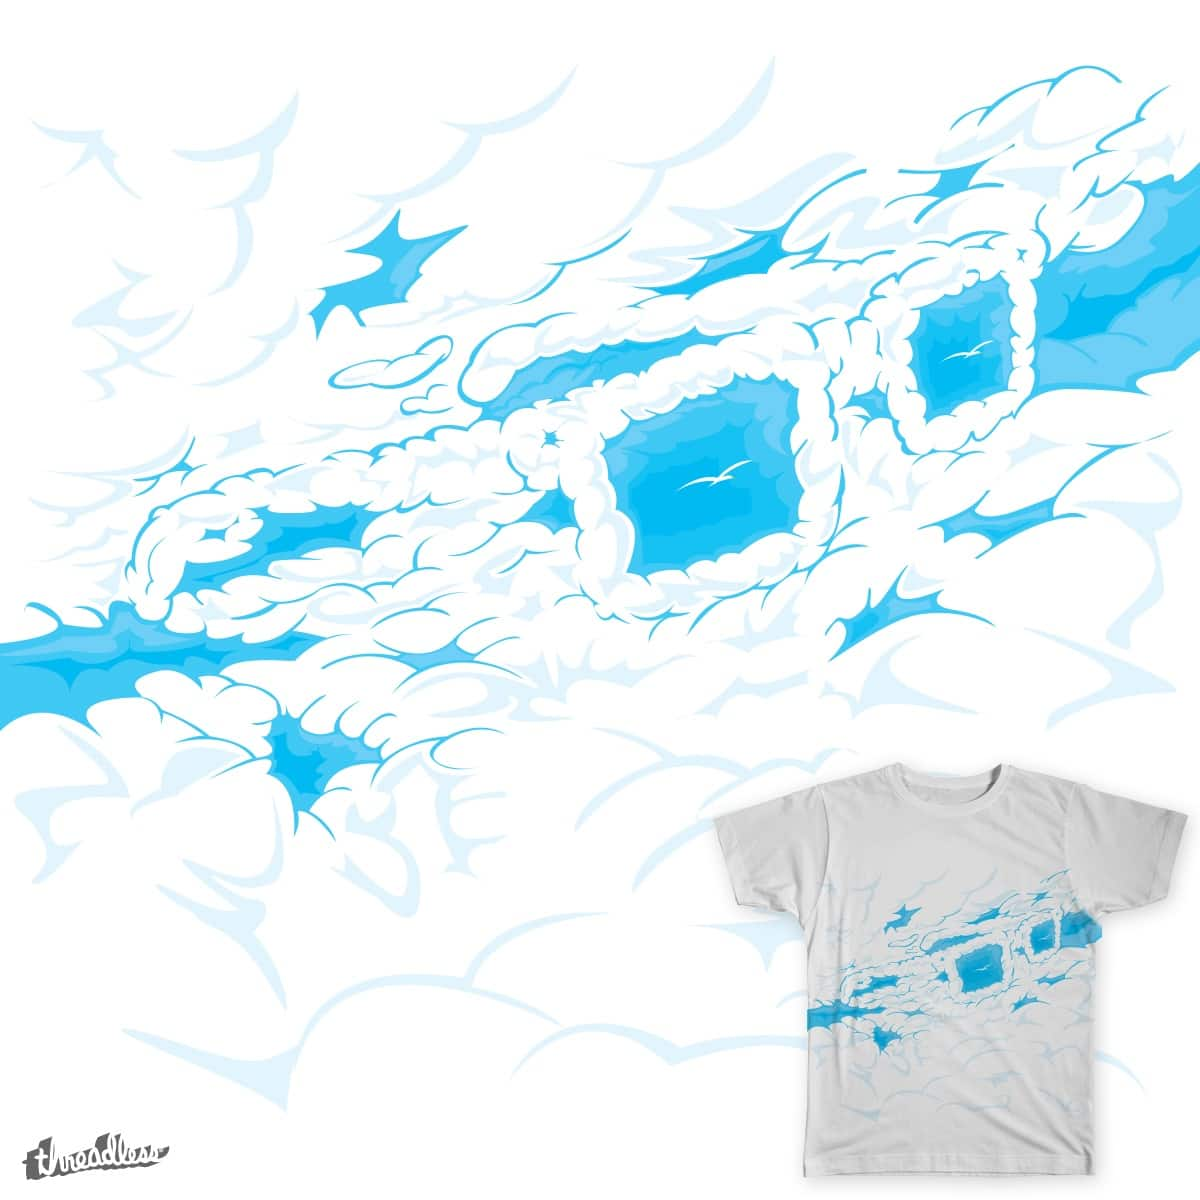 Geek on the clouds by deepsyner on Threadless